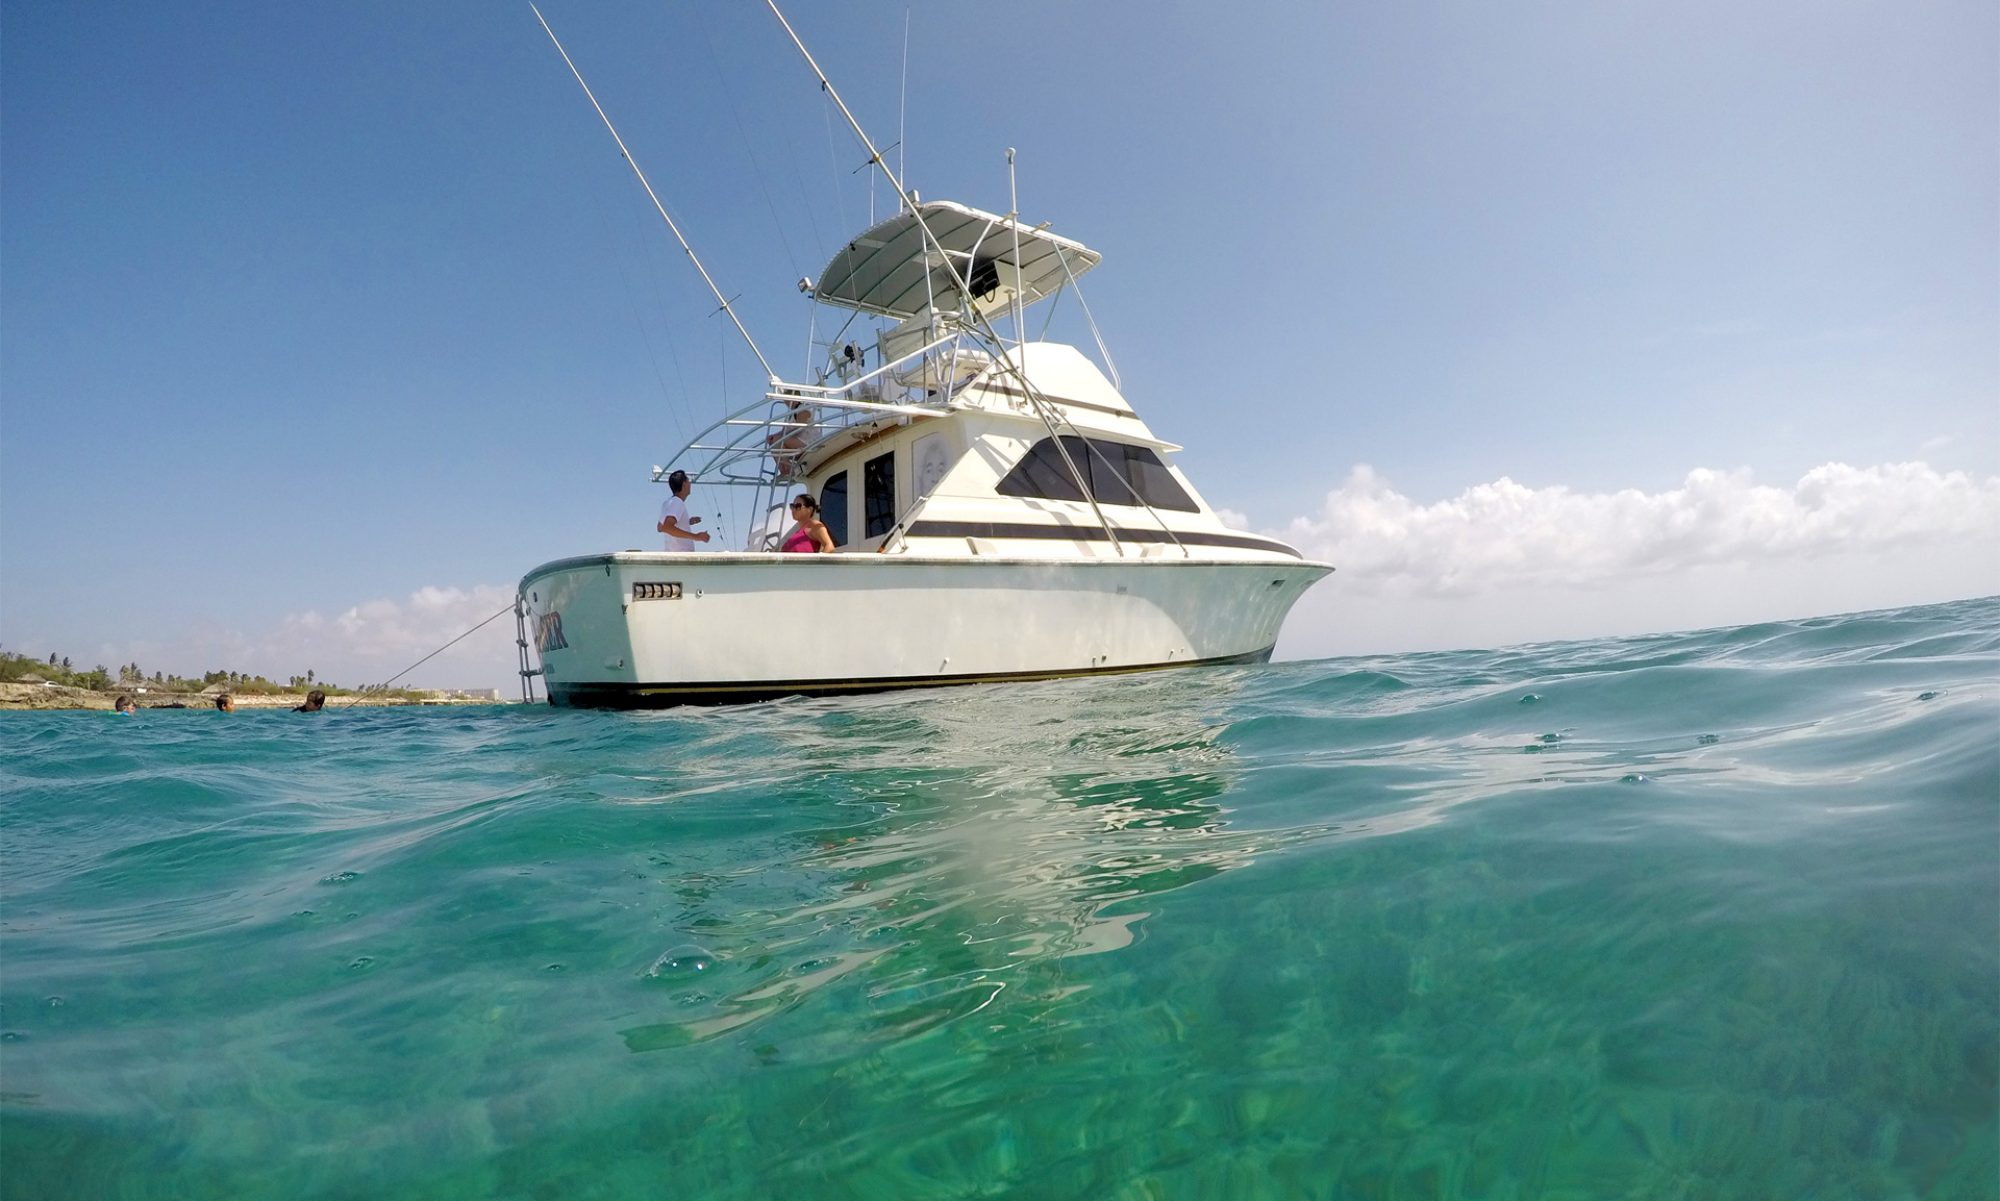 The fish teaser fishing charters aruba Fishing in aruba